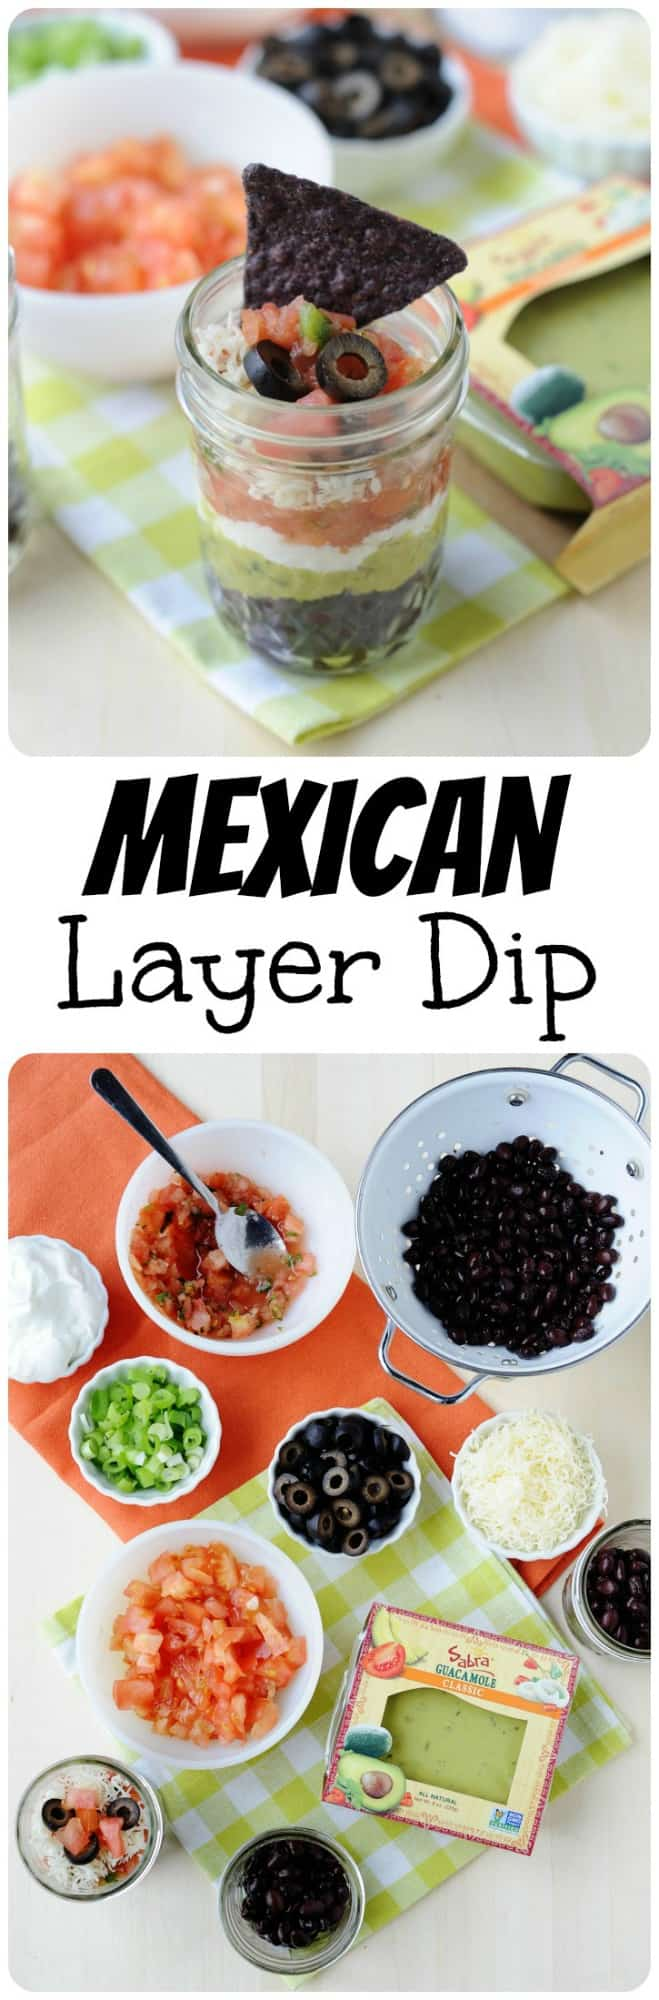 These 7 Layer Mexican Dip Cups are made with black beans instead of refried beans. Perfect to use leftovers from Taco night or as a party appetizer!